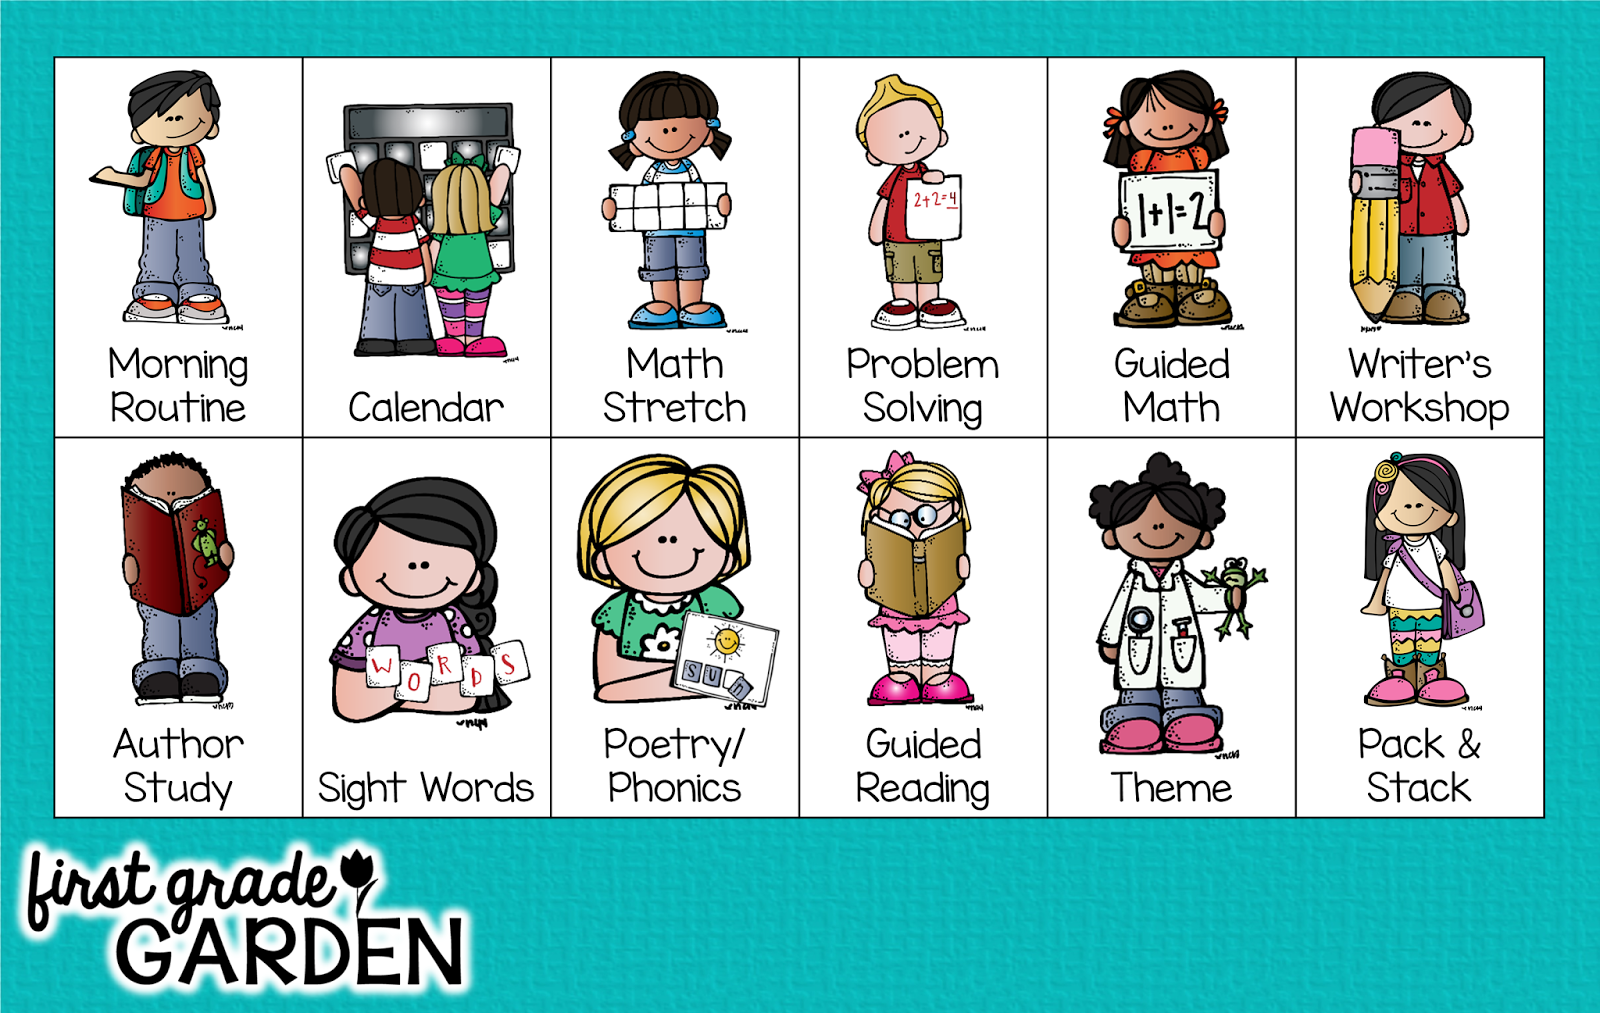 first grade garden: daily schedule - guided reading {what is the